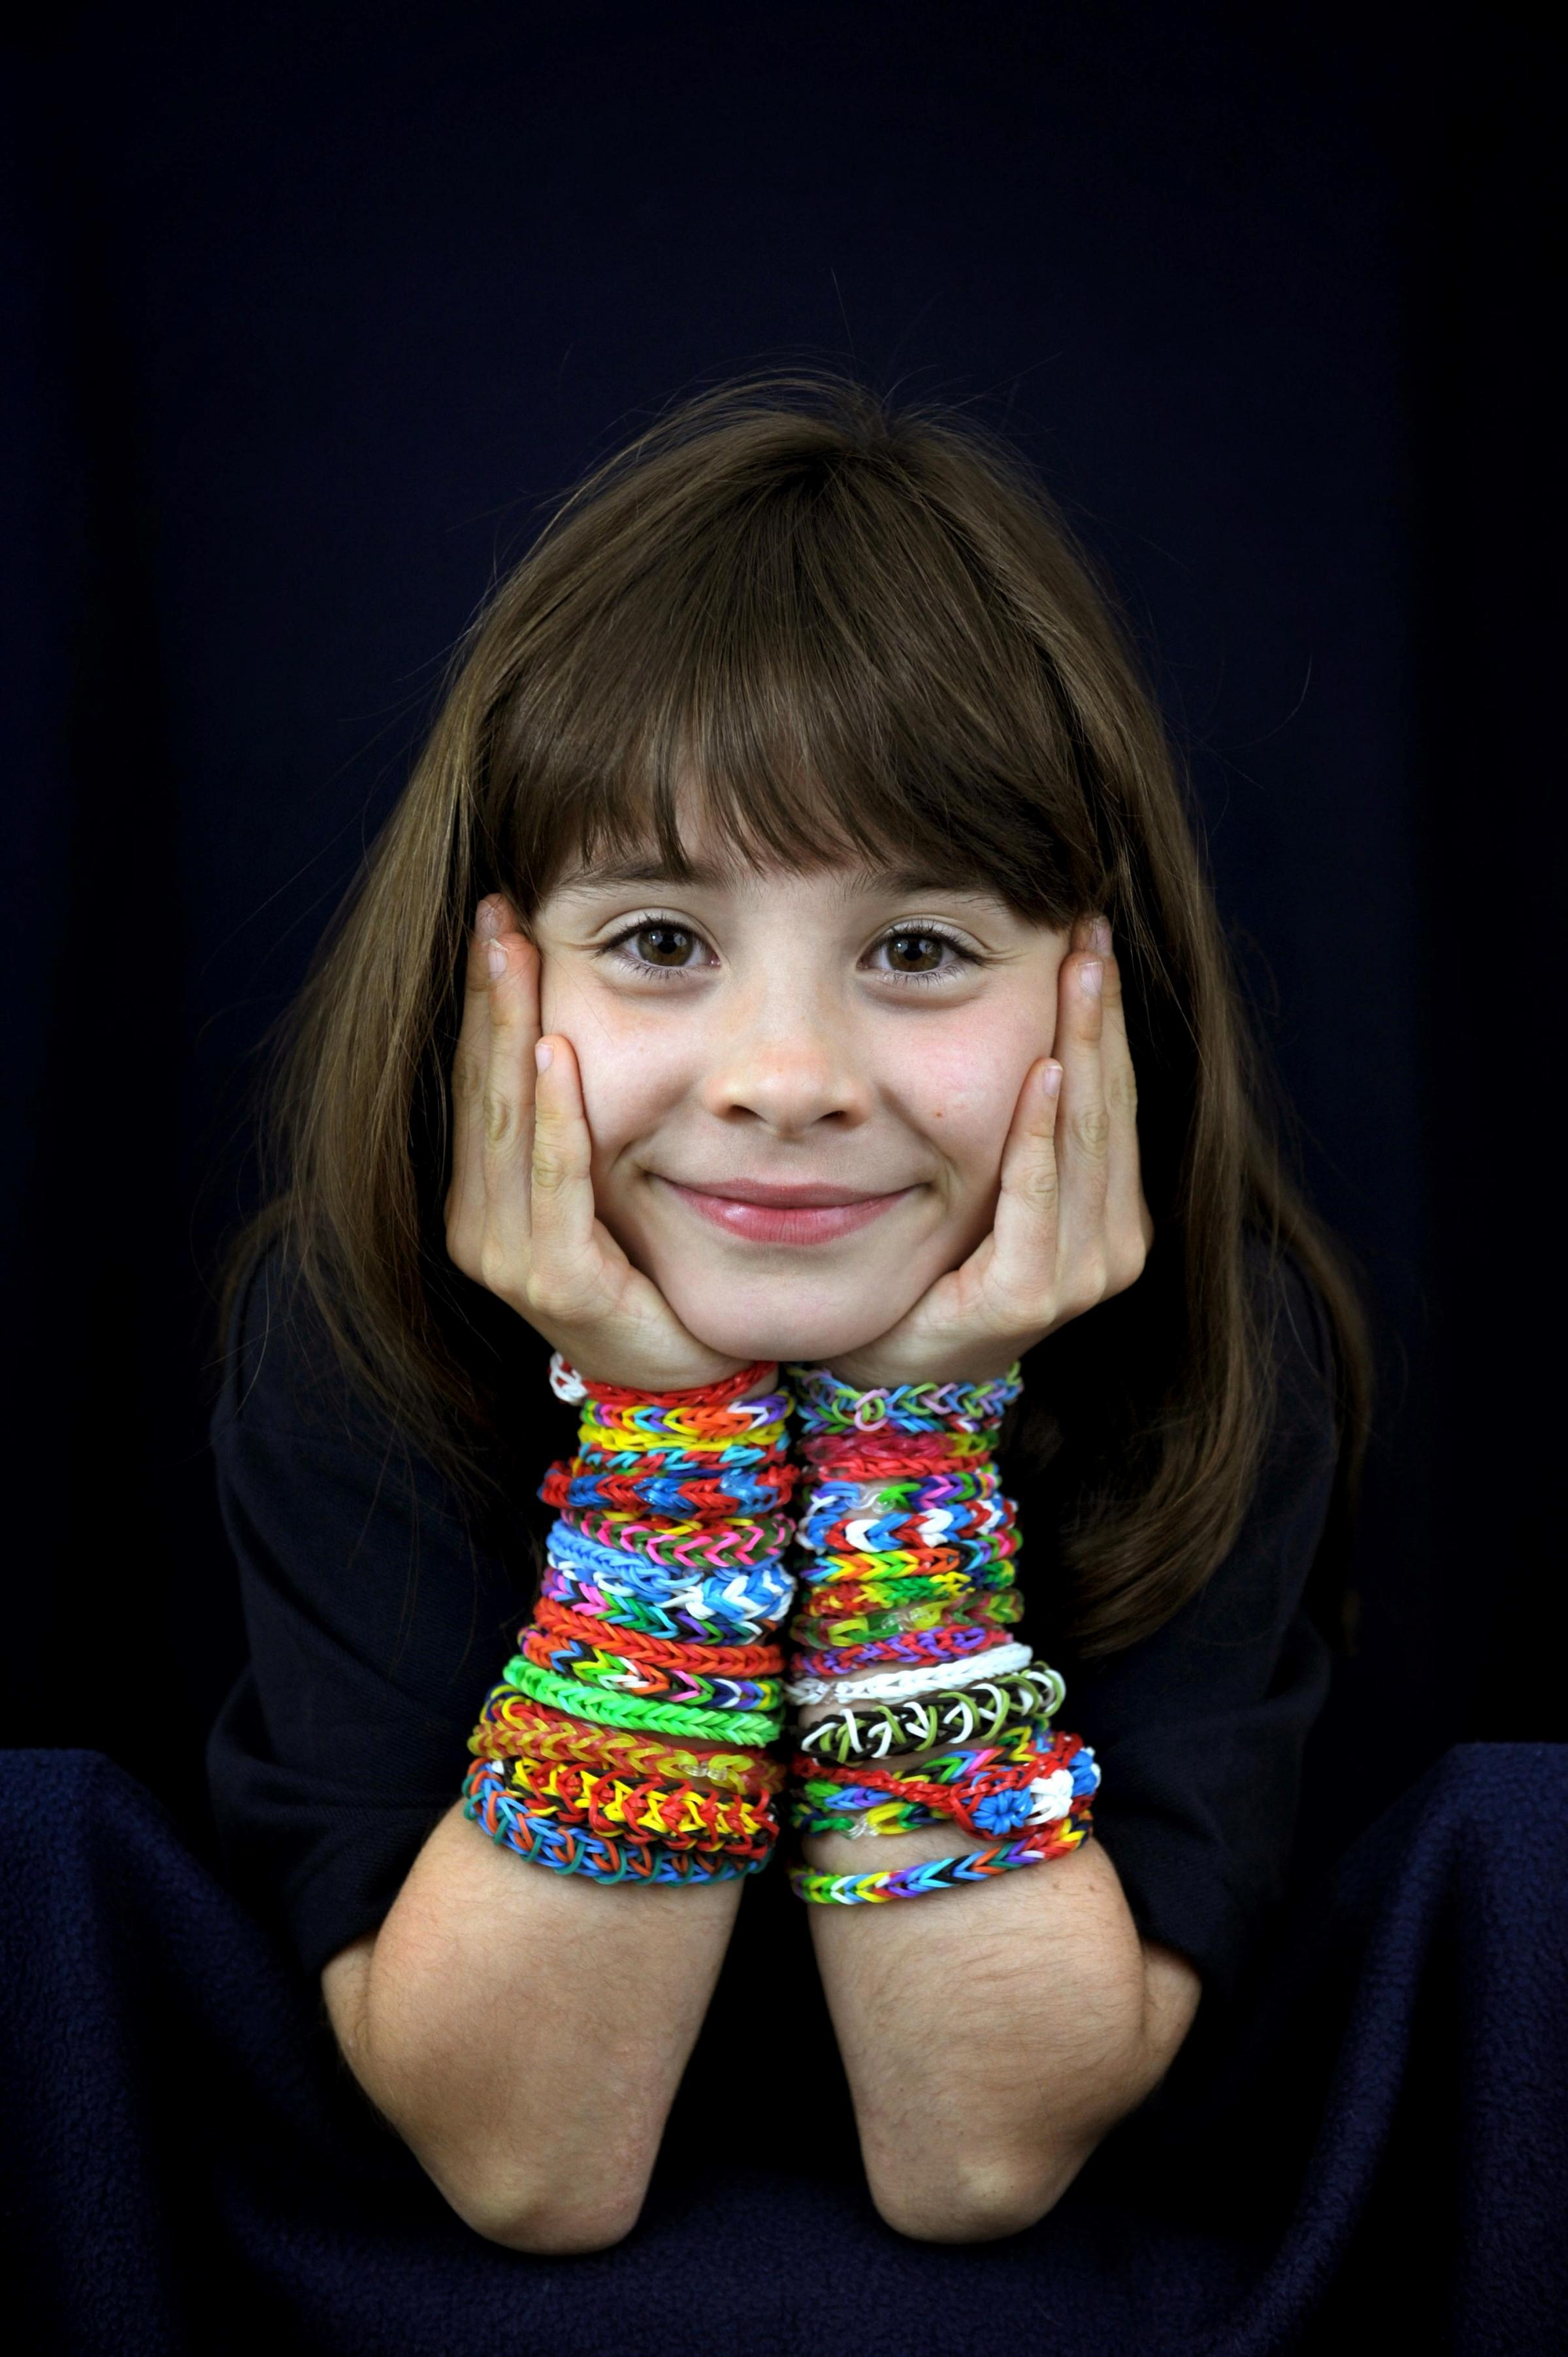 IT'S THE WEEKEND: The allure of loom bands is here to stay